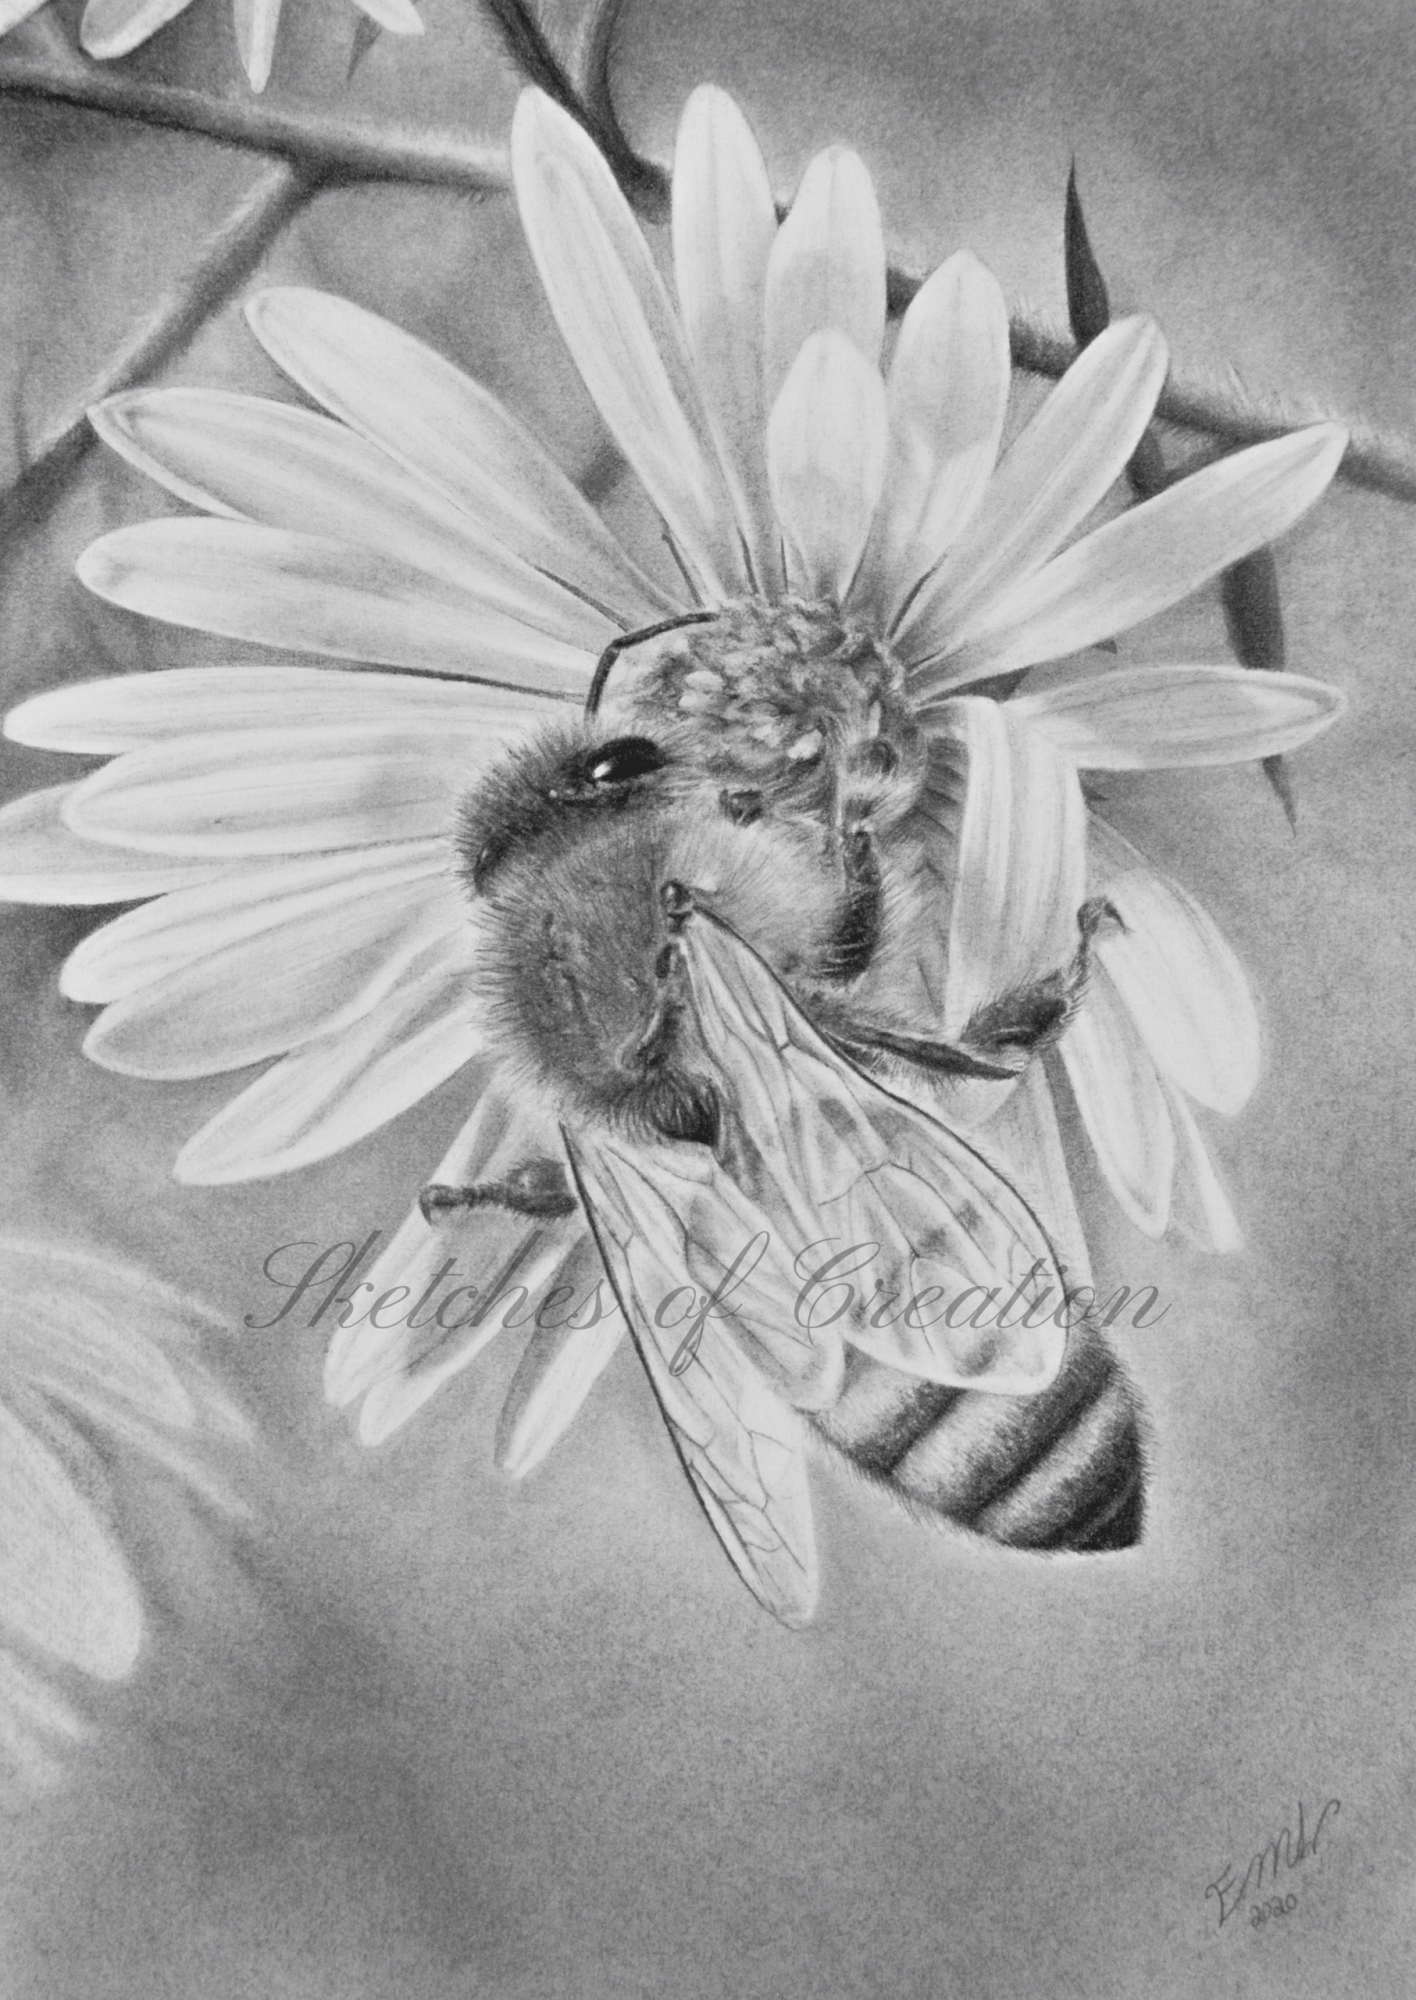 'Honey Bee' a drawing of a honey bee on a flower. 5x7 inches. Completed October 2020